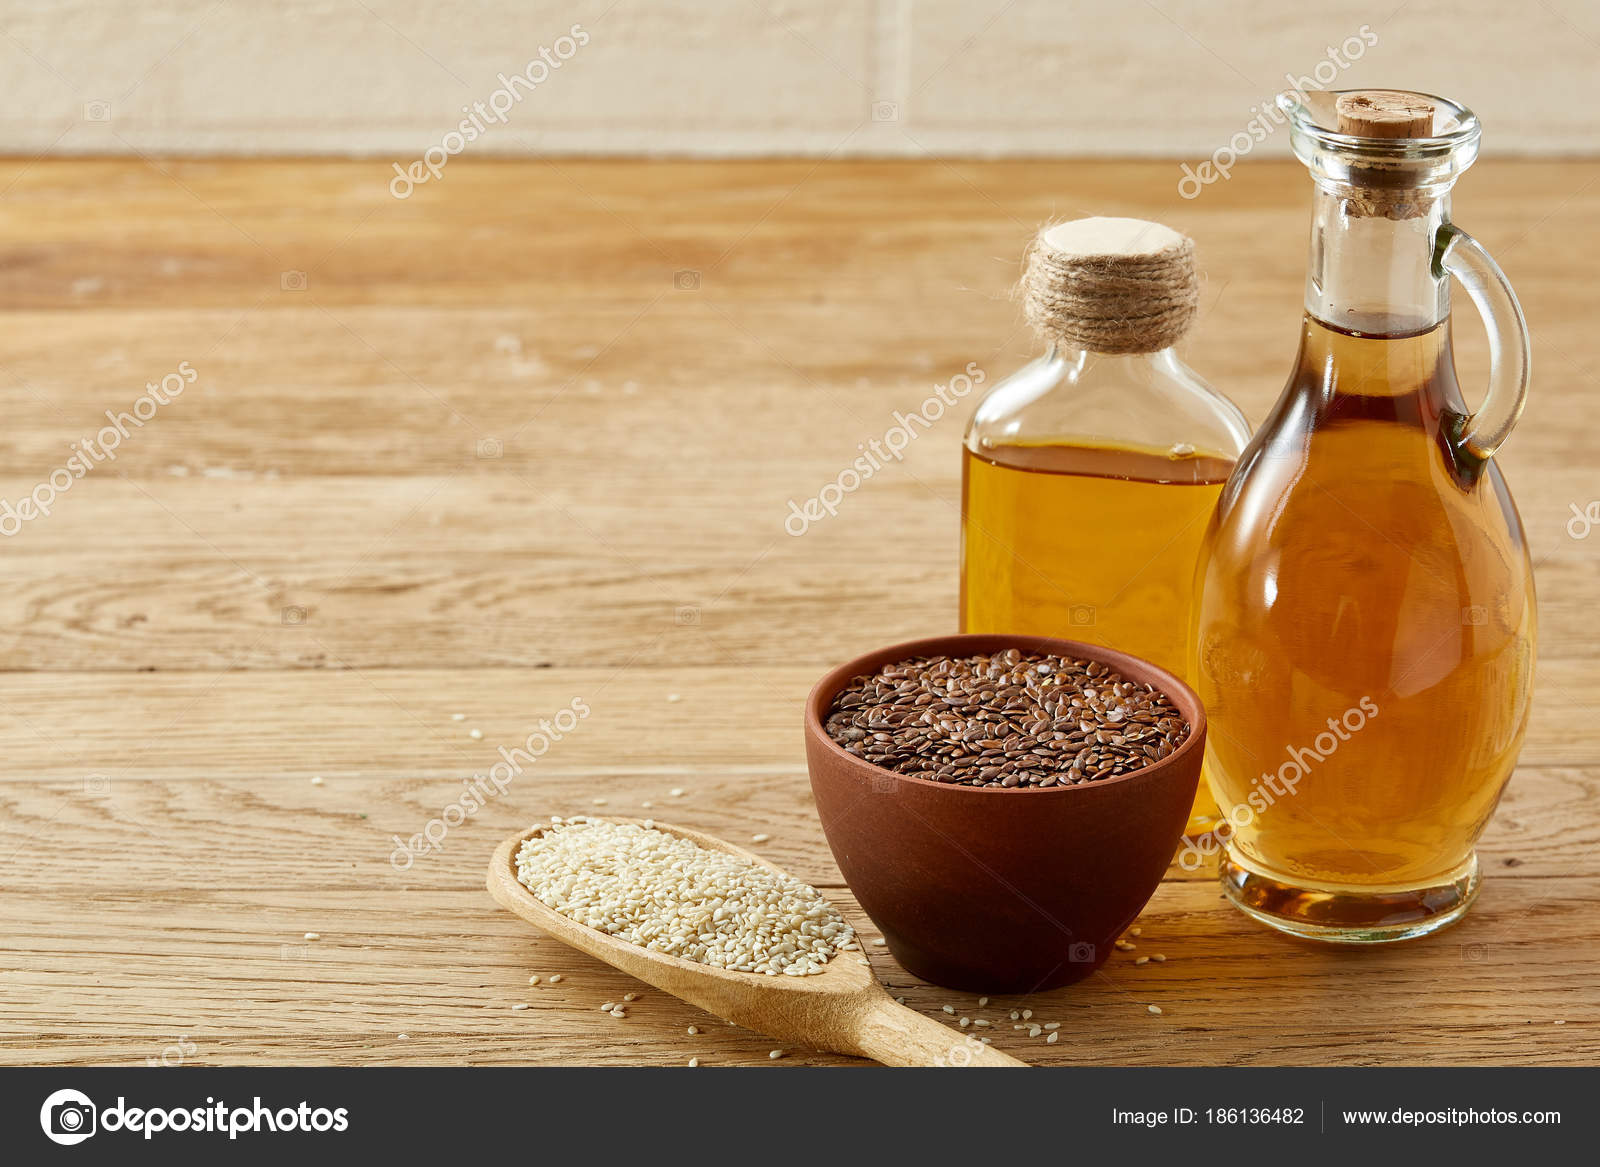 Flax Seeds In Bowl Flaxseed Oil In Glass Bottle Spoon With Rise On